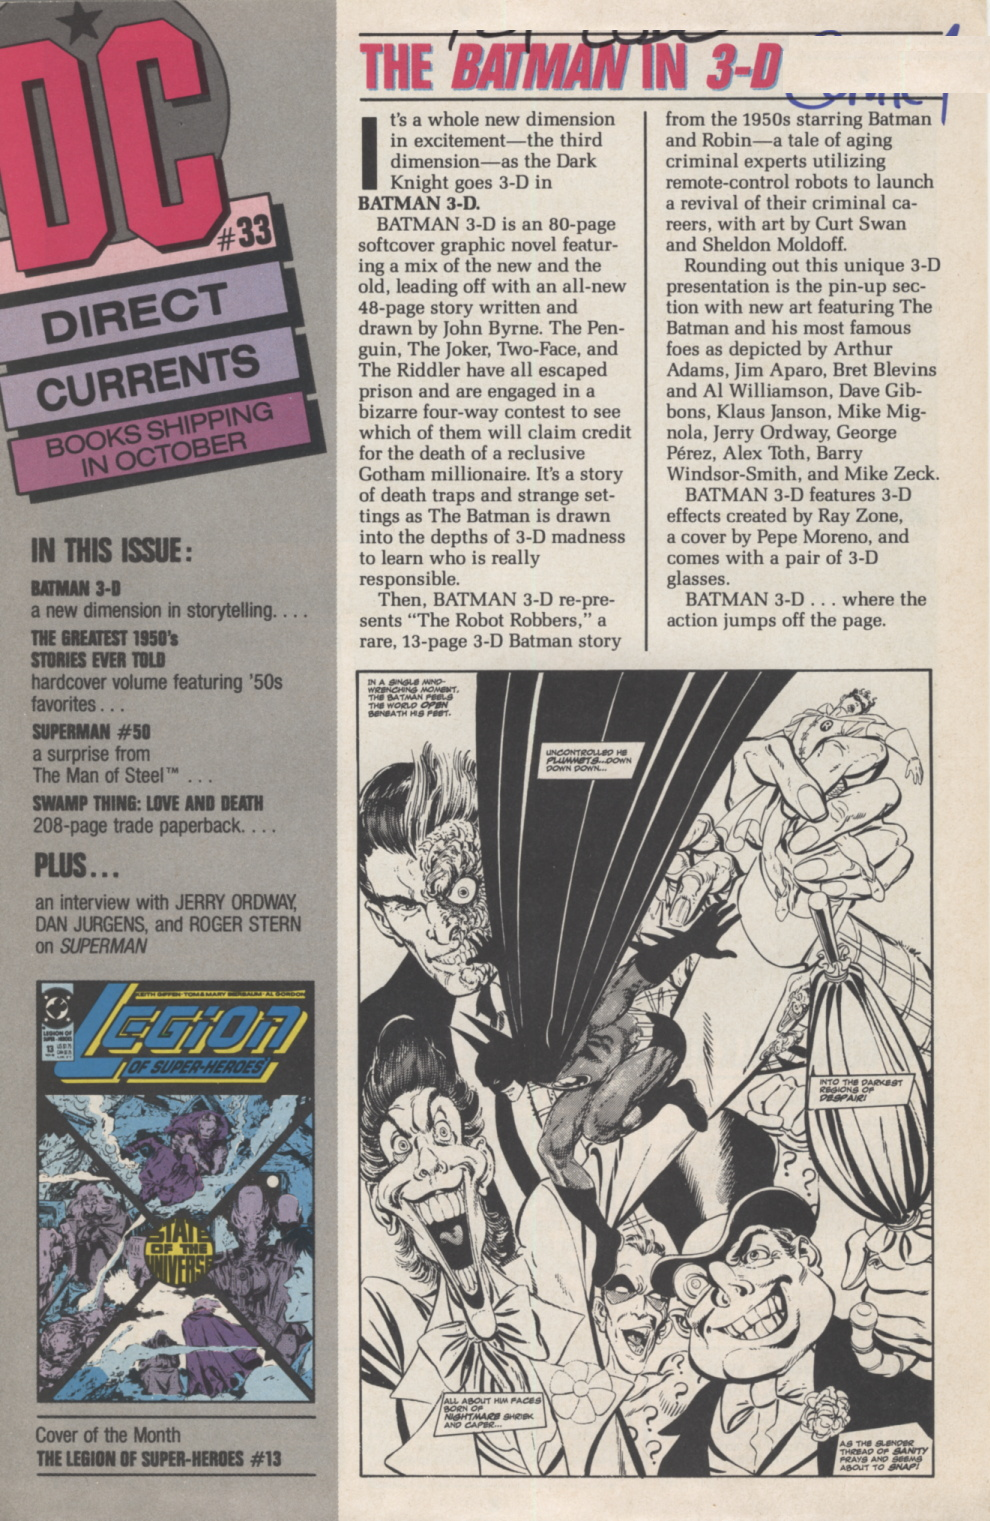 Time Capsule: DC Direct Currents 33 October 1990